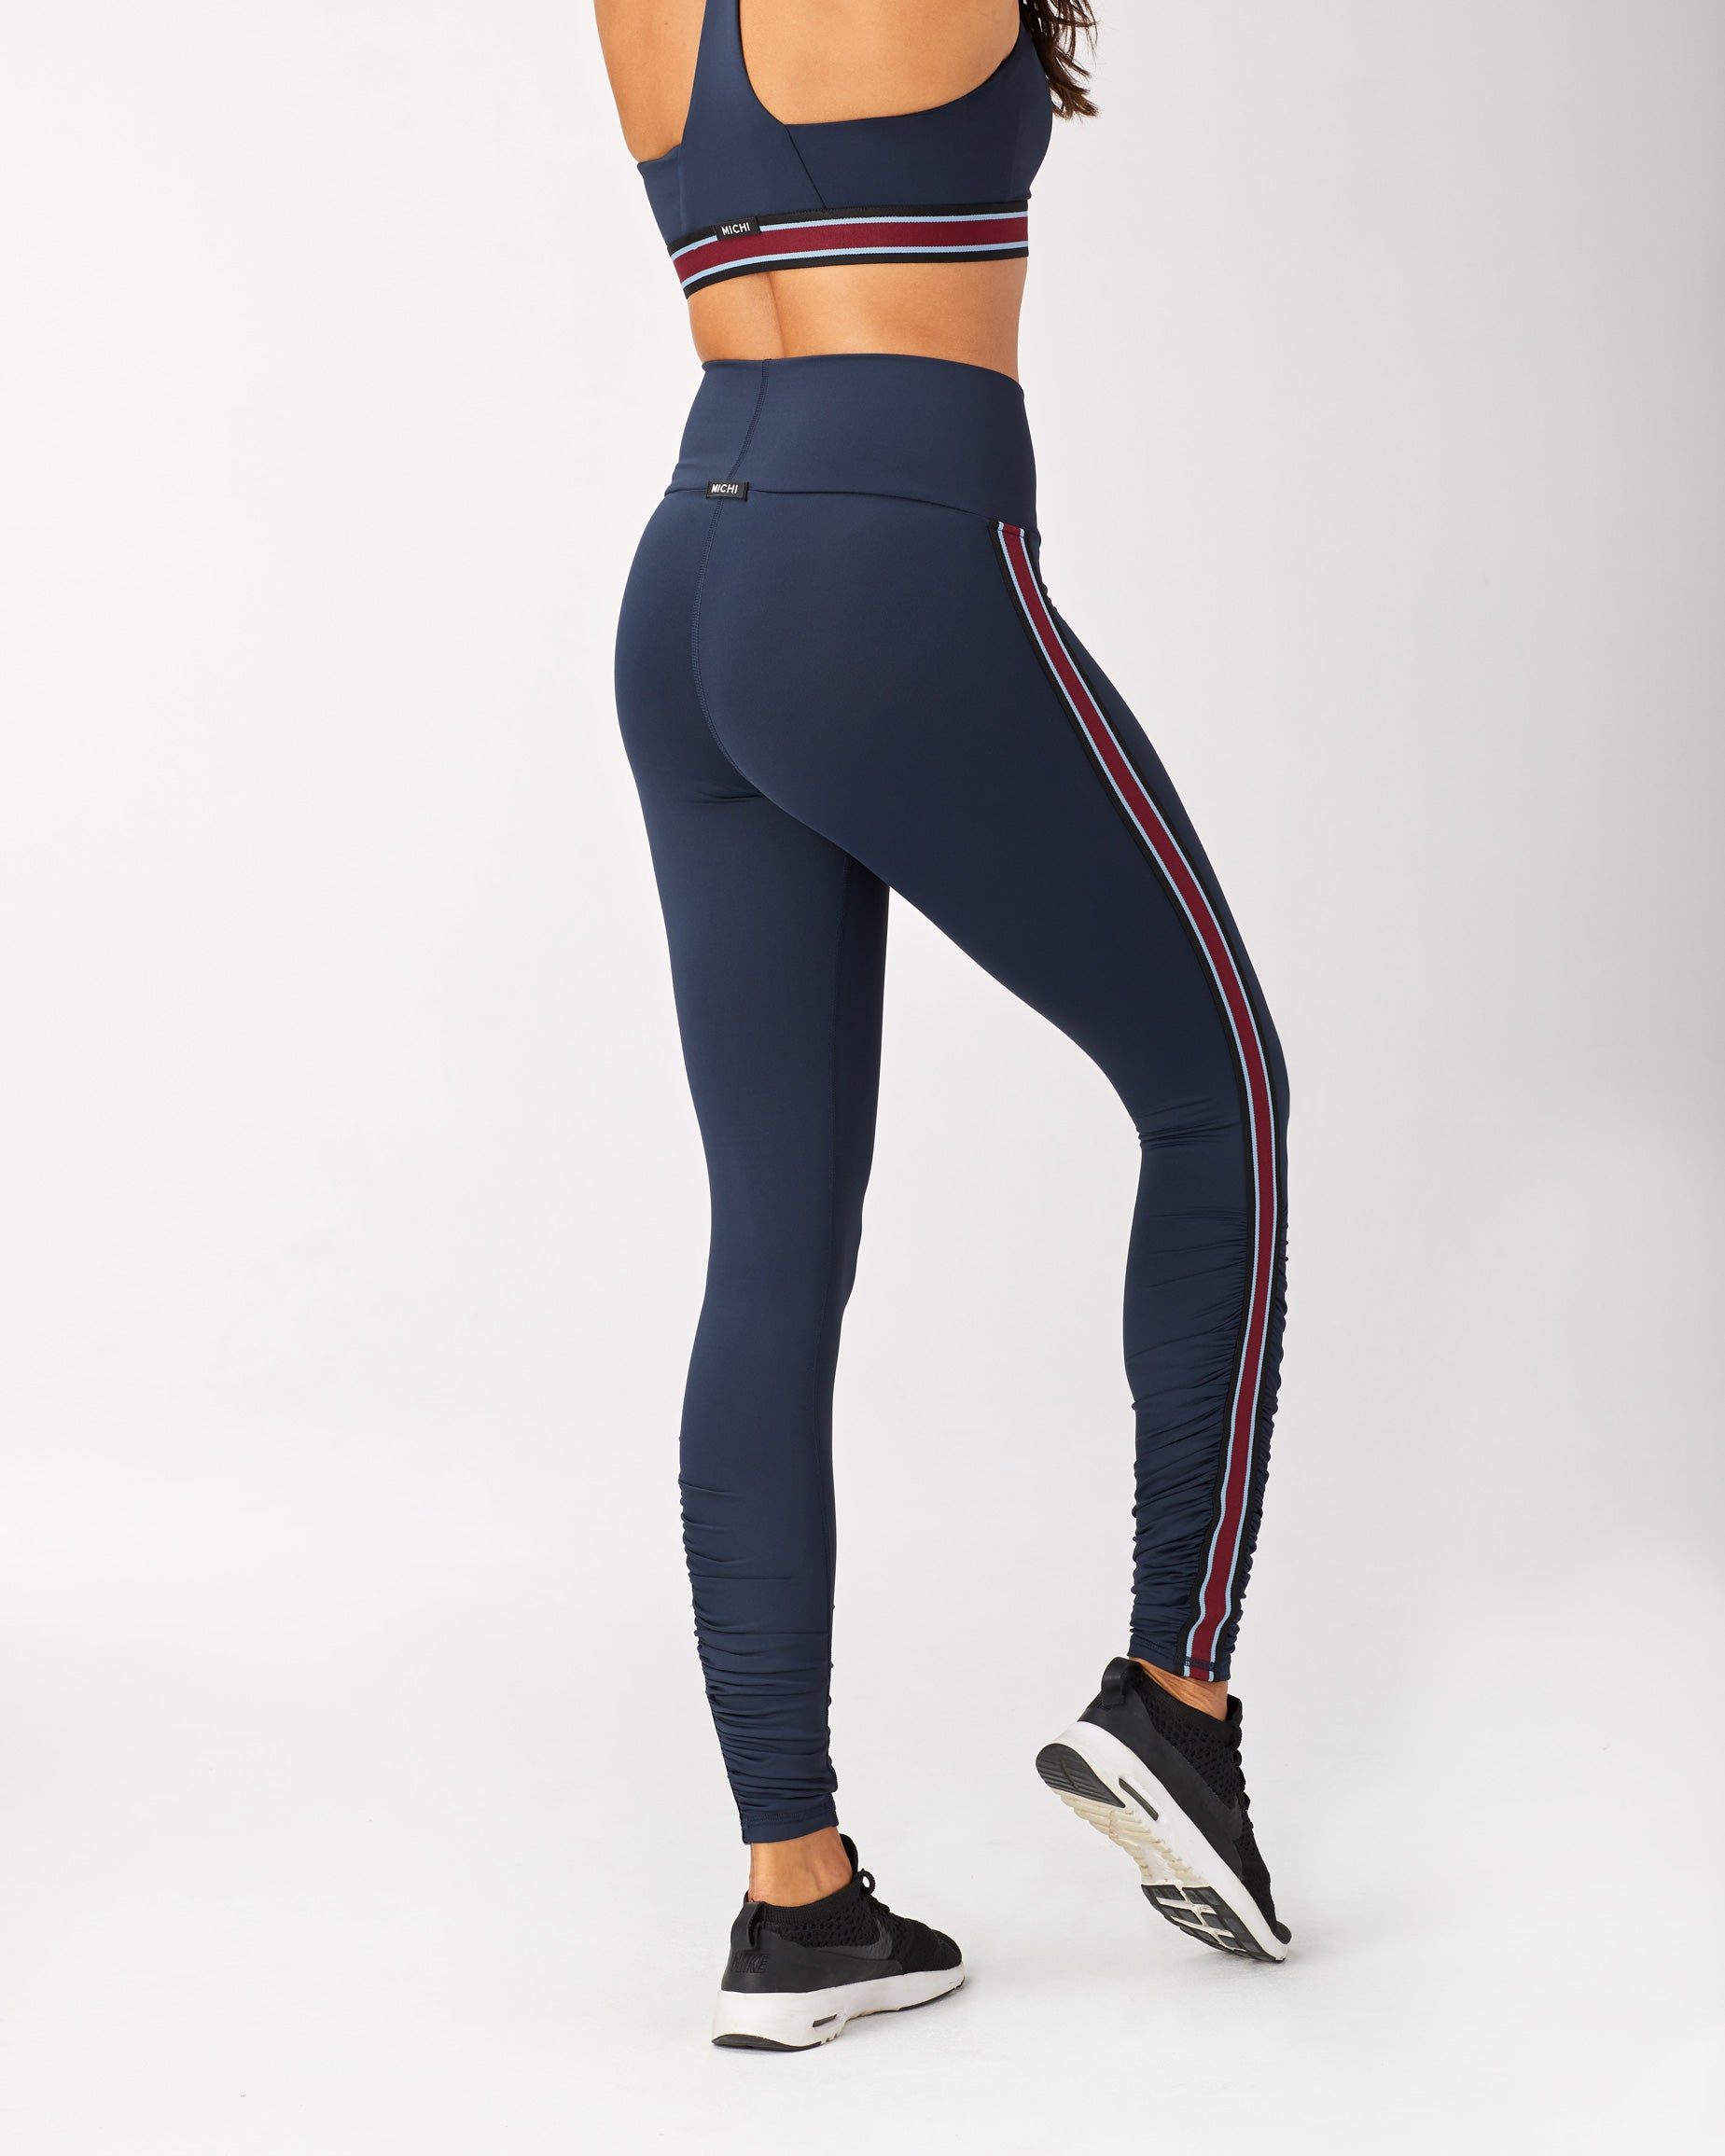 speed-high-waisted-legging-deep-sea-navy